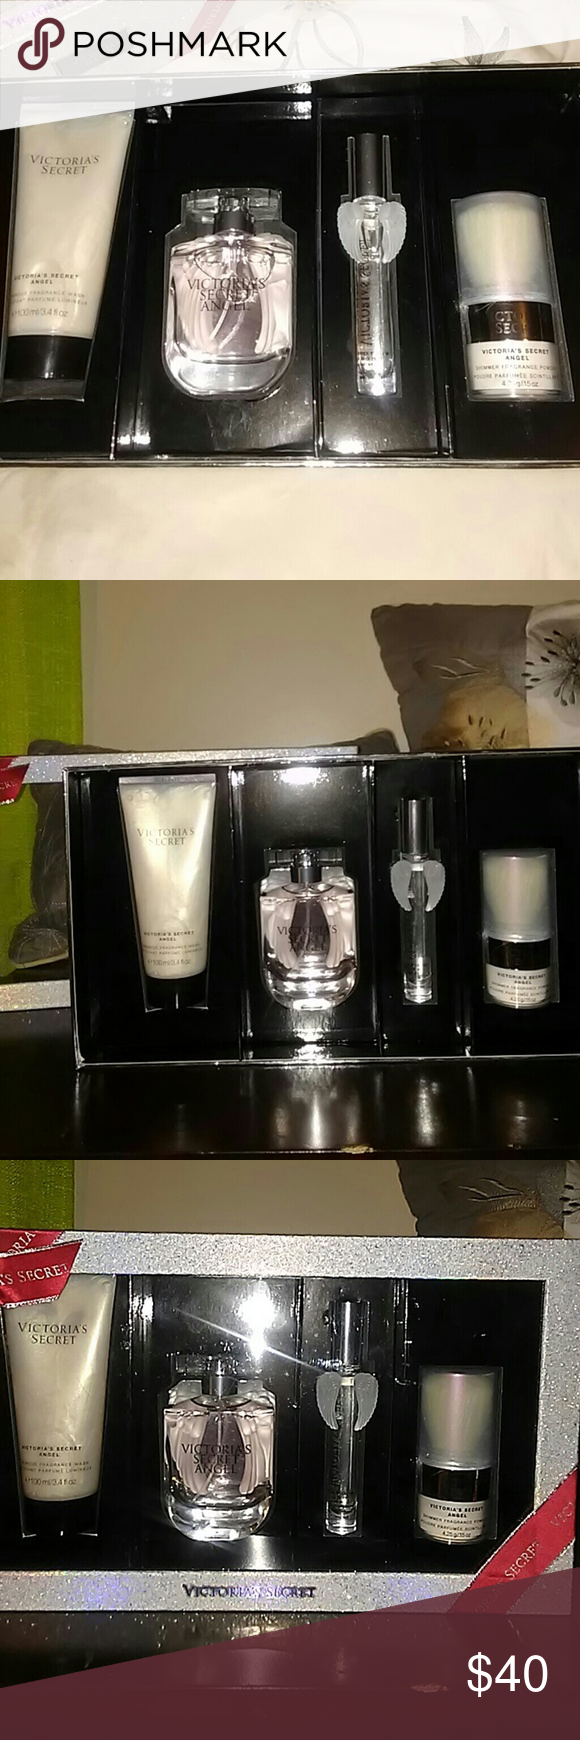 Women's Victoria's Secret Angel parfume set bnwb Includes: body wash, traveling tube, shimmer powder and full bottle of 1.7 oz. Never used was a gift Victoria's Secret Other